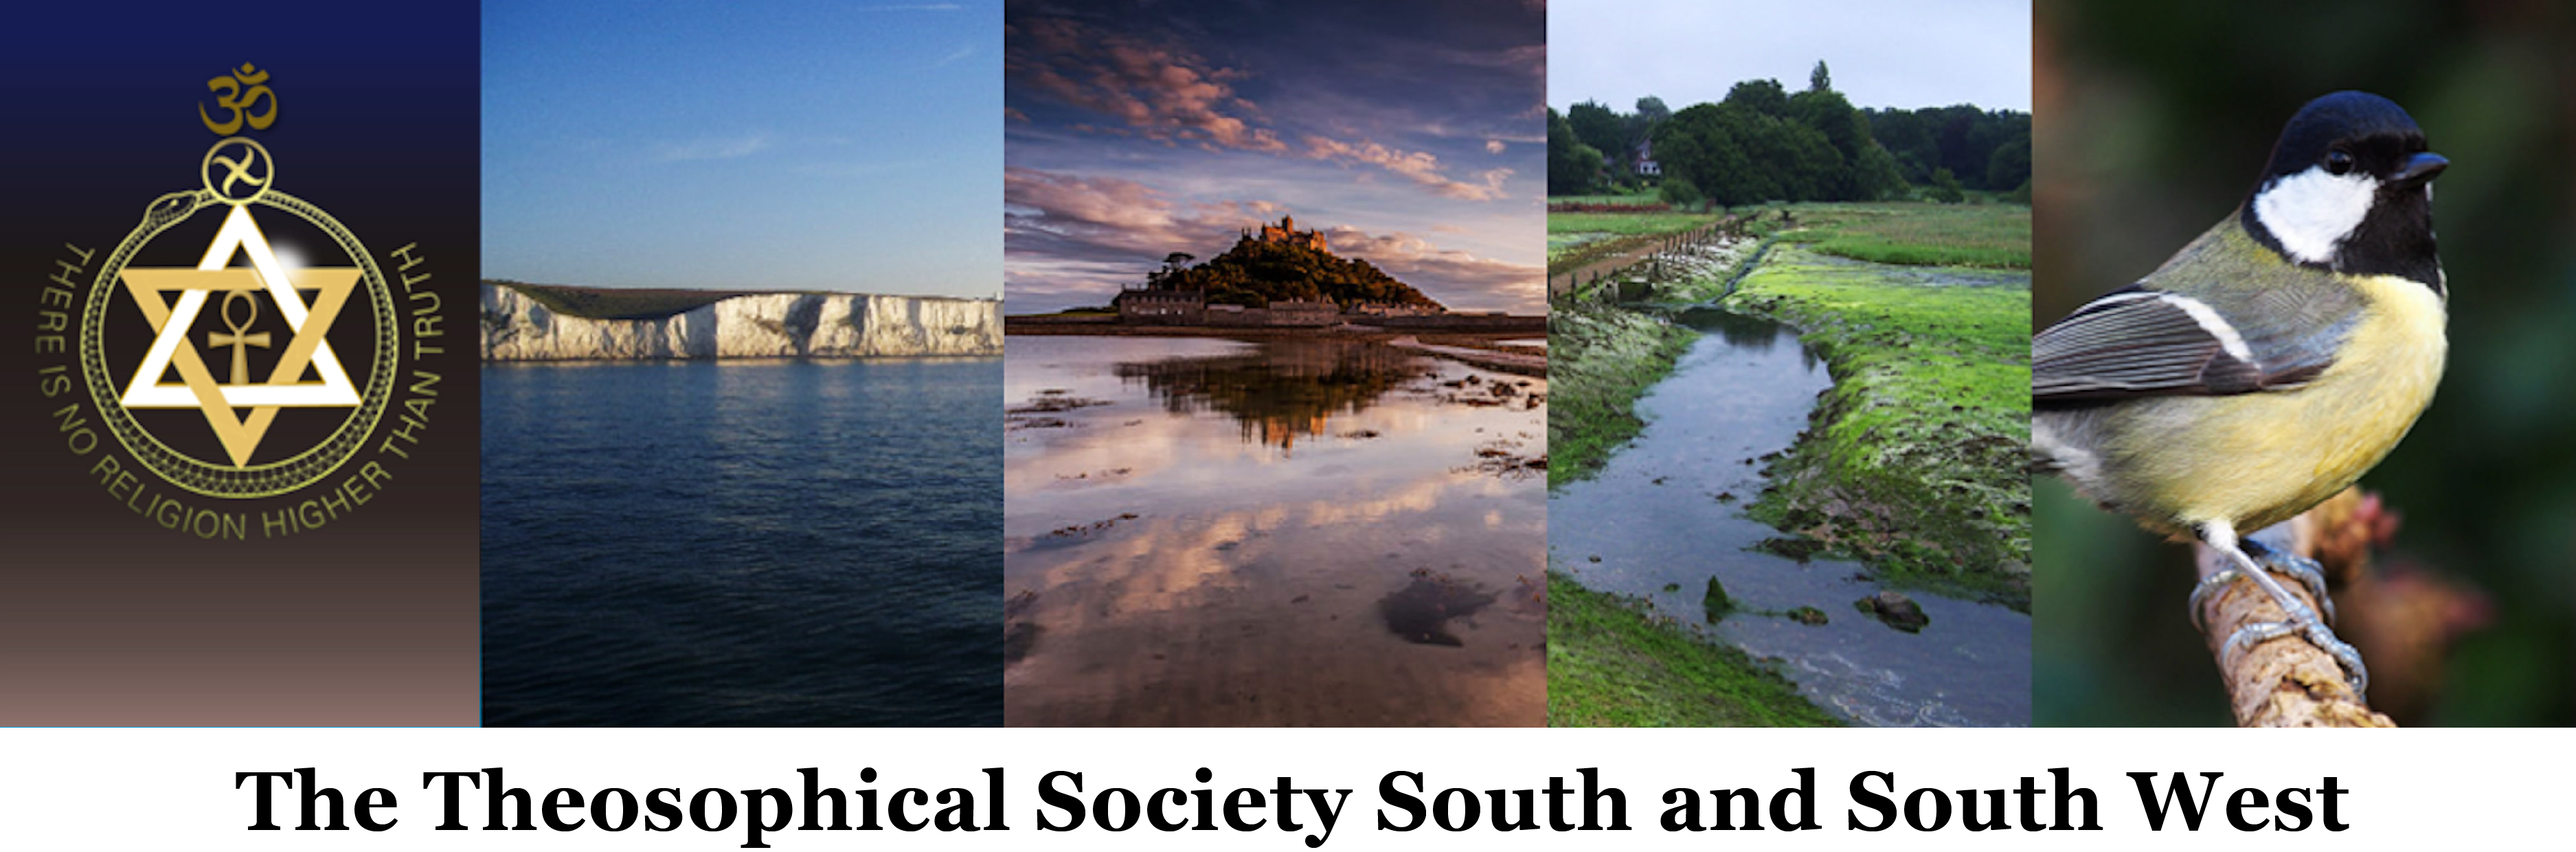 The Theosophical Society South and South West